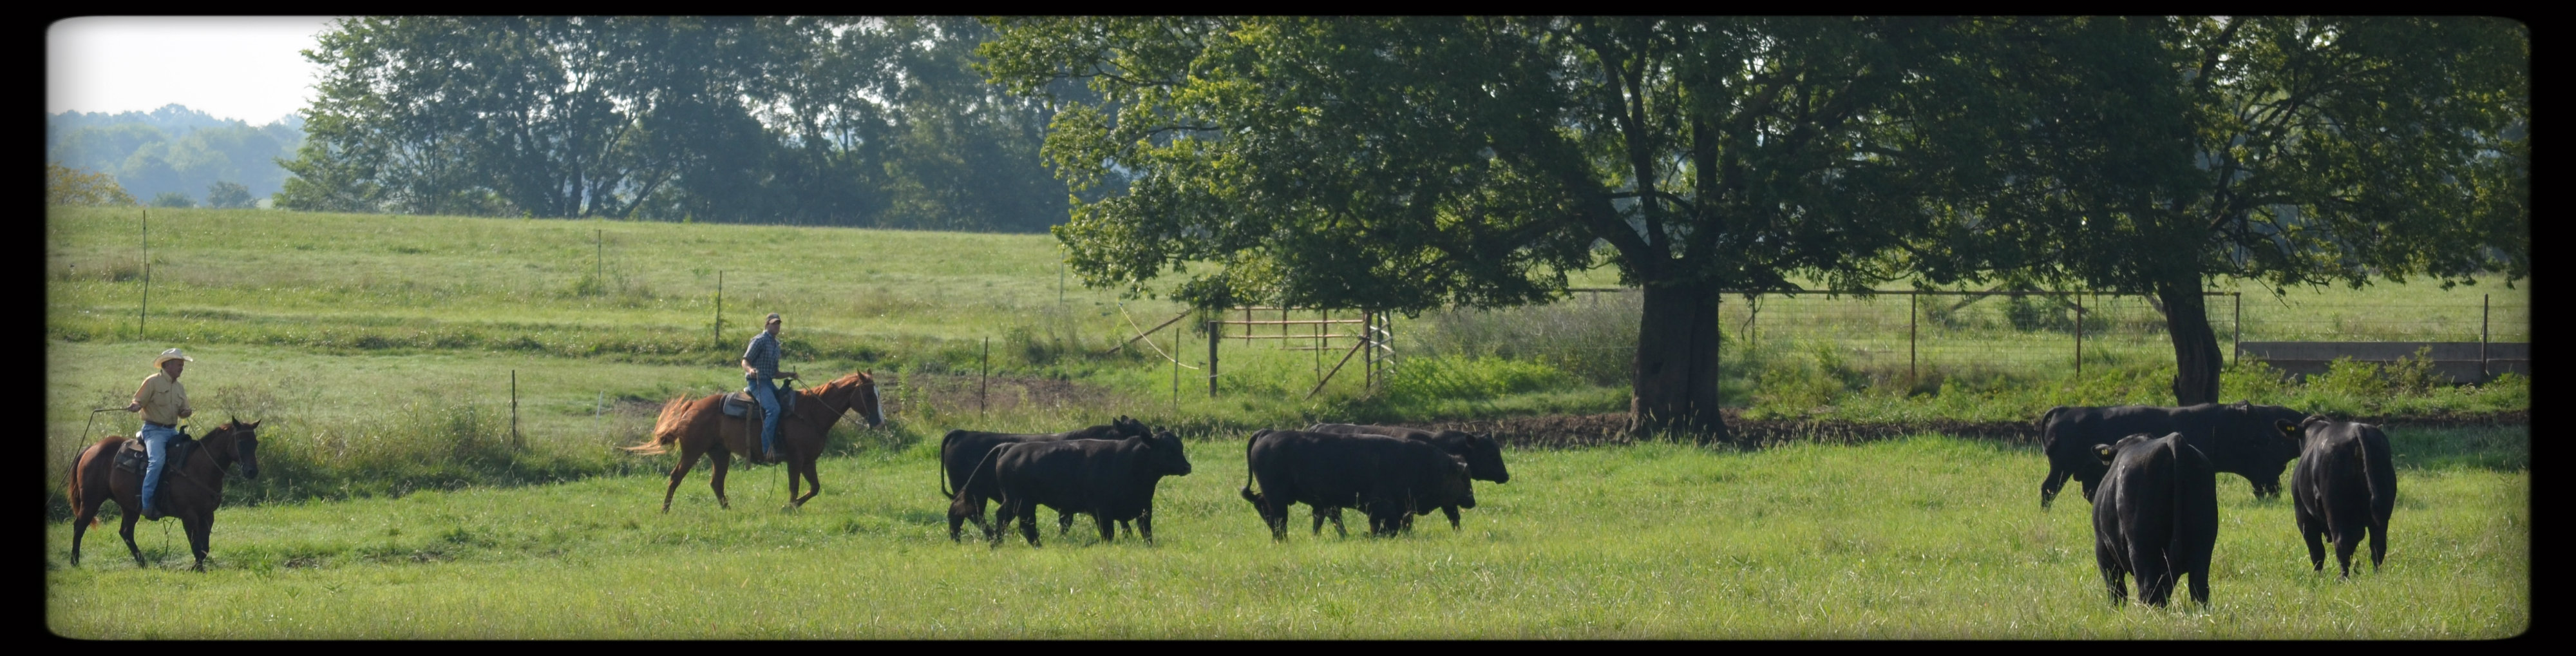 CK Cattle Bulls pic 2